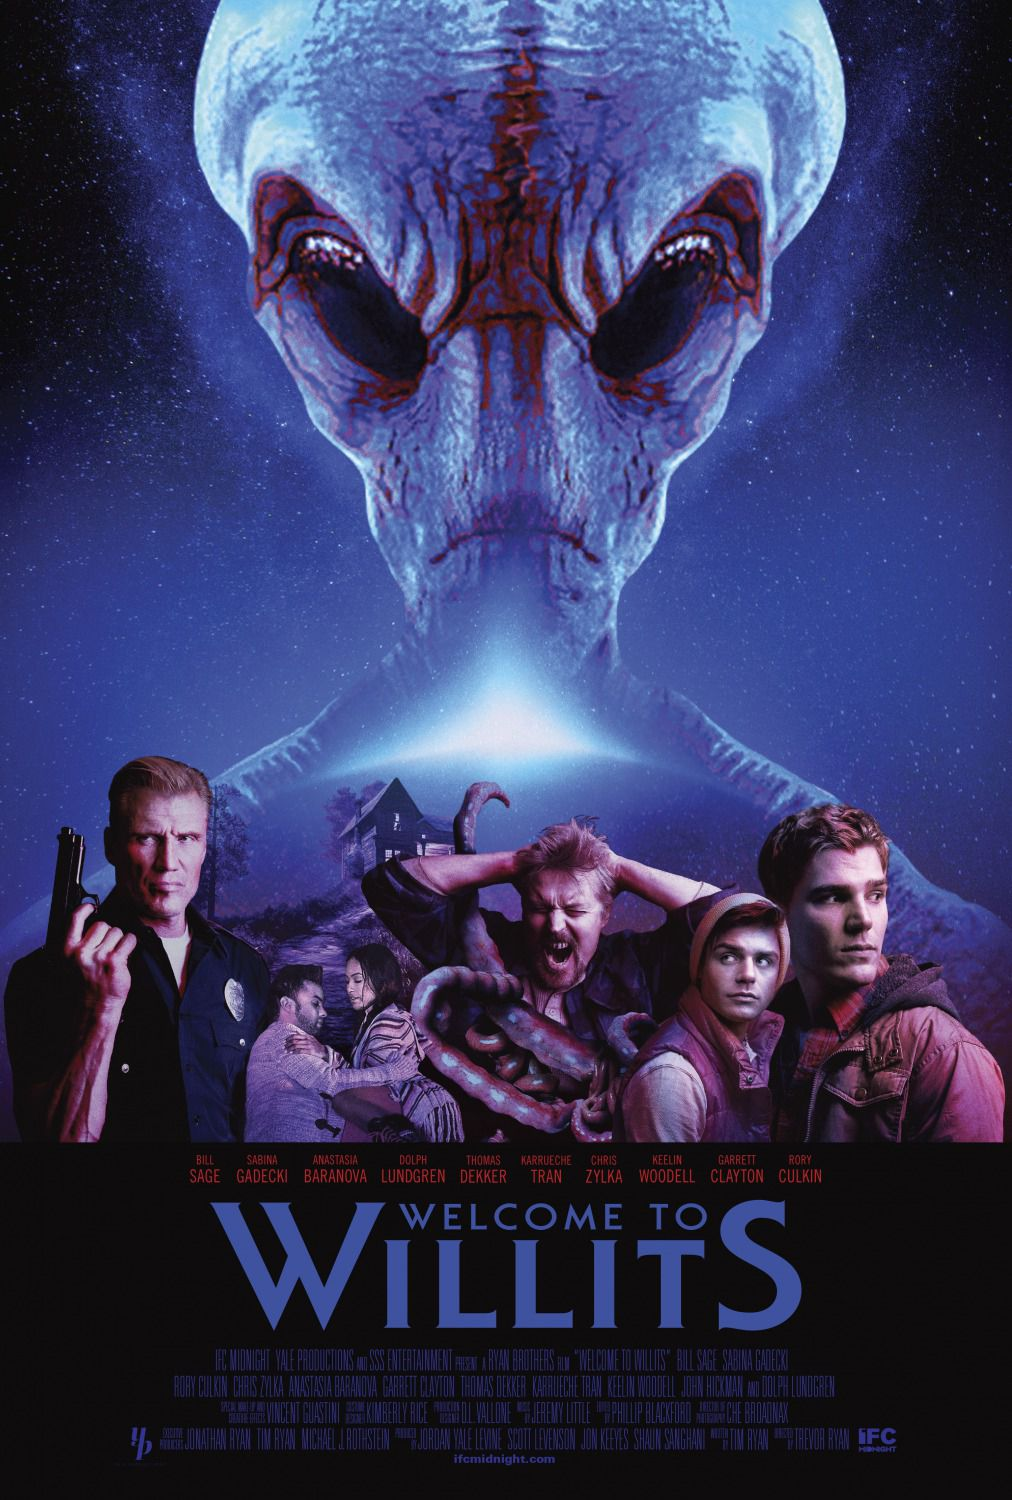 Welcome to Willits - horror poster - Dolph Lundgren - Rory Culkin - Thomas Dekker - Chris Zylka - film poster